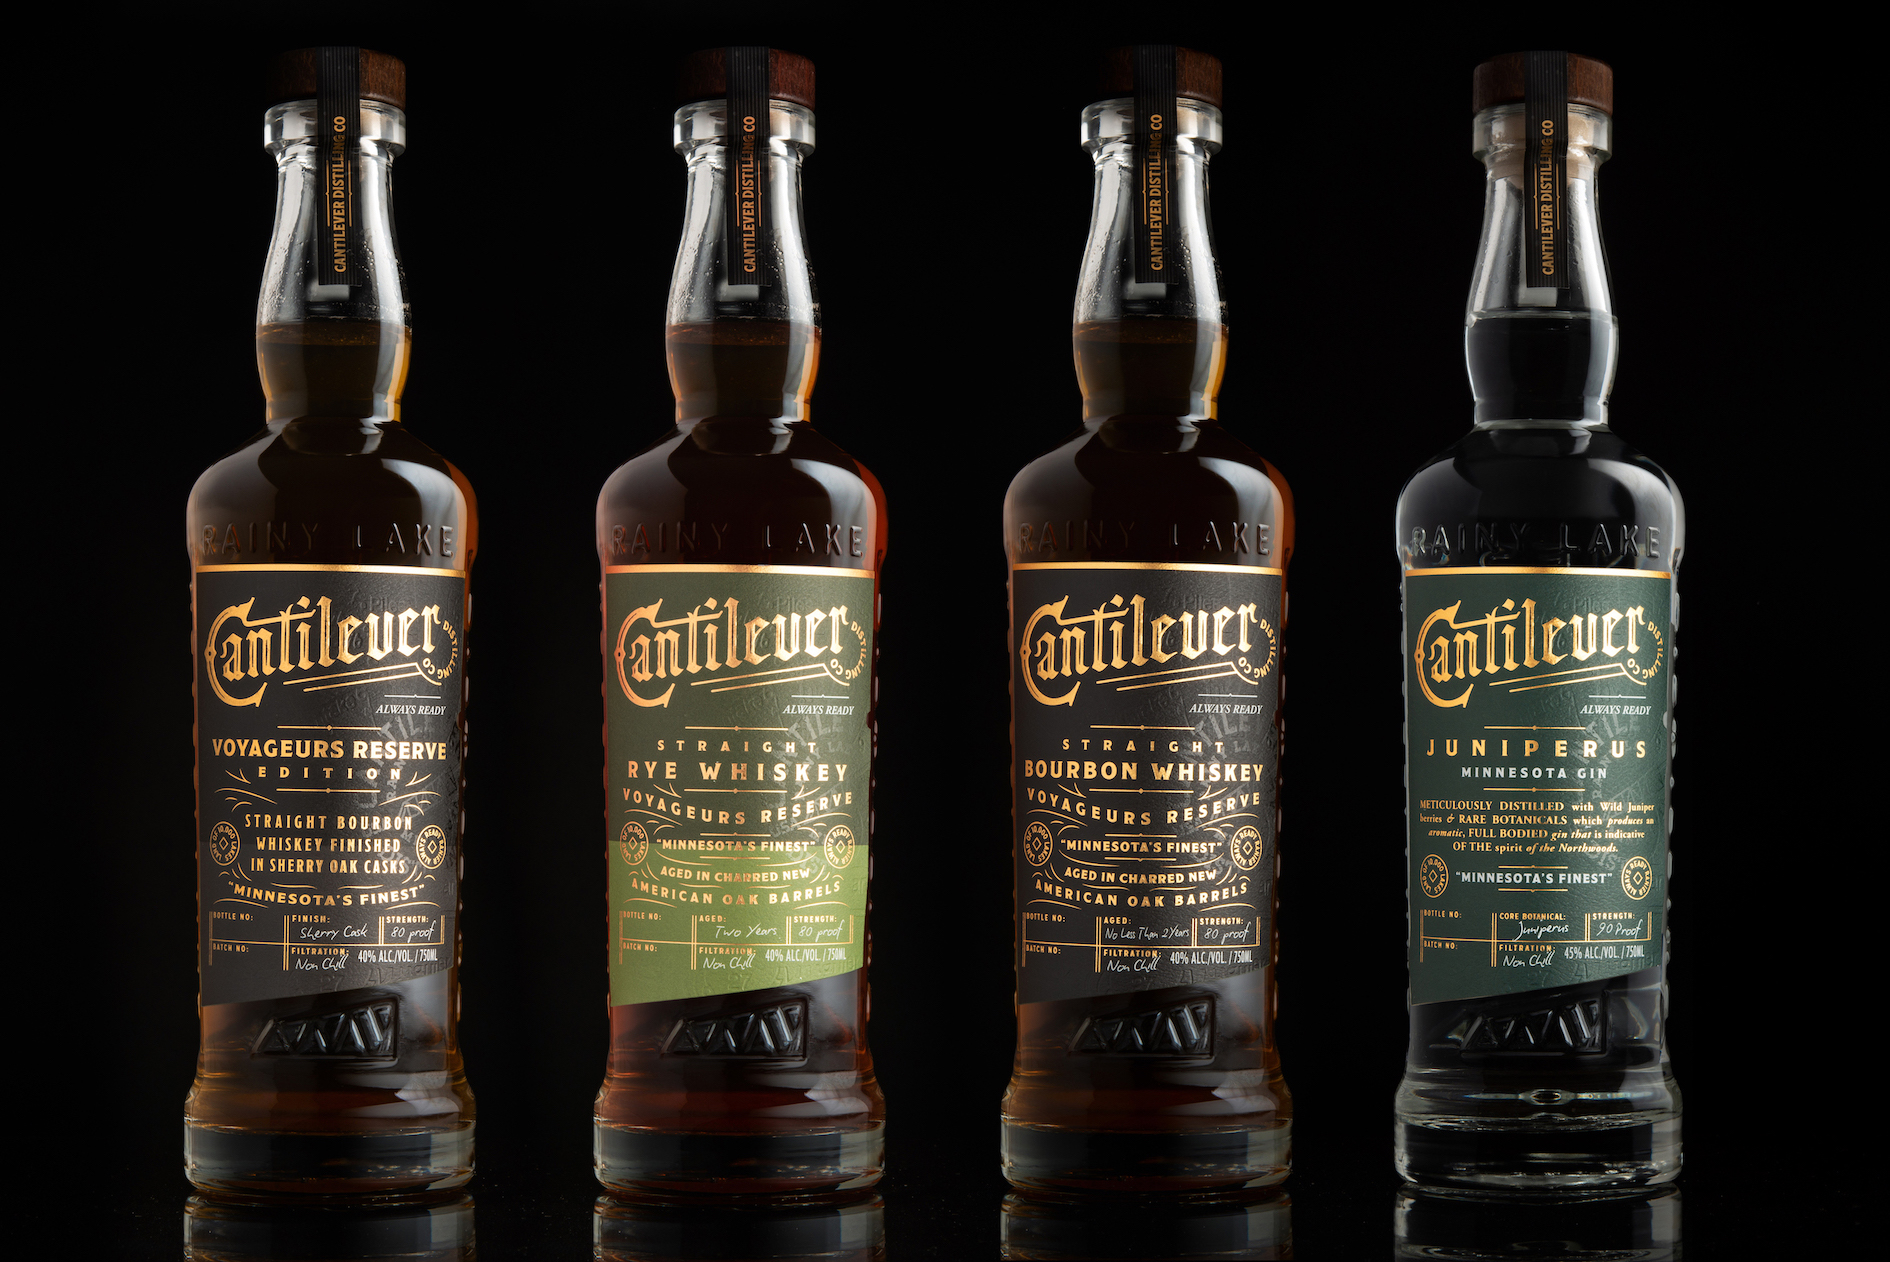 Cantilever Distillery Custom Bottle and Packaging Design by Thoroughbred Spirits Design